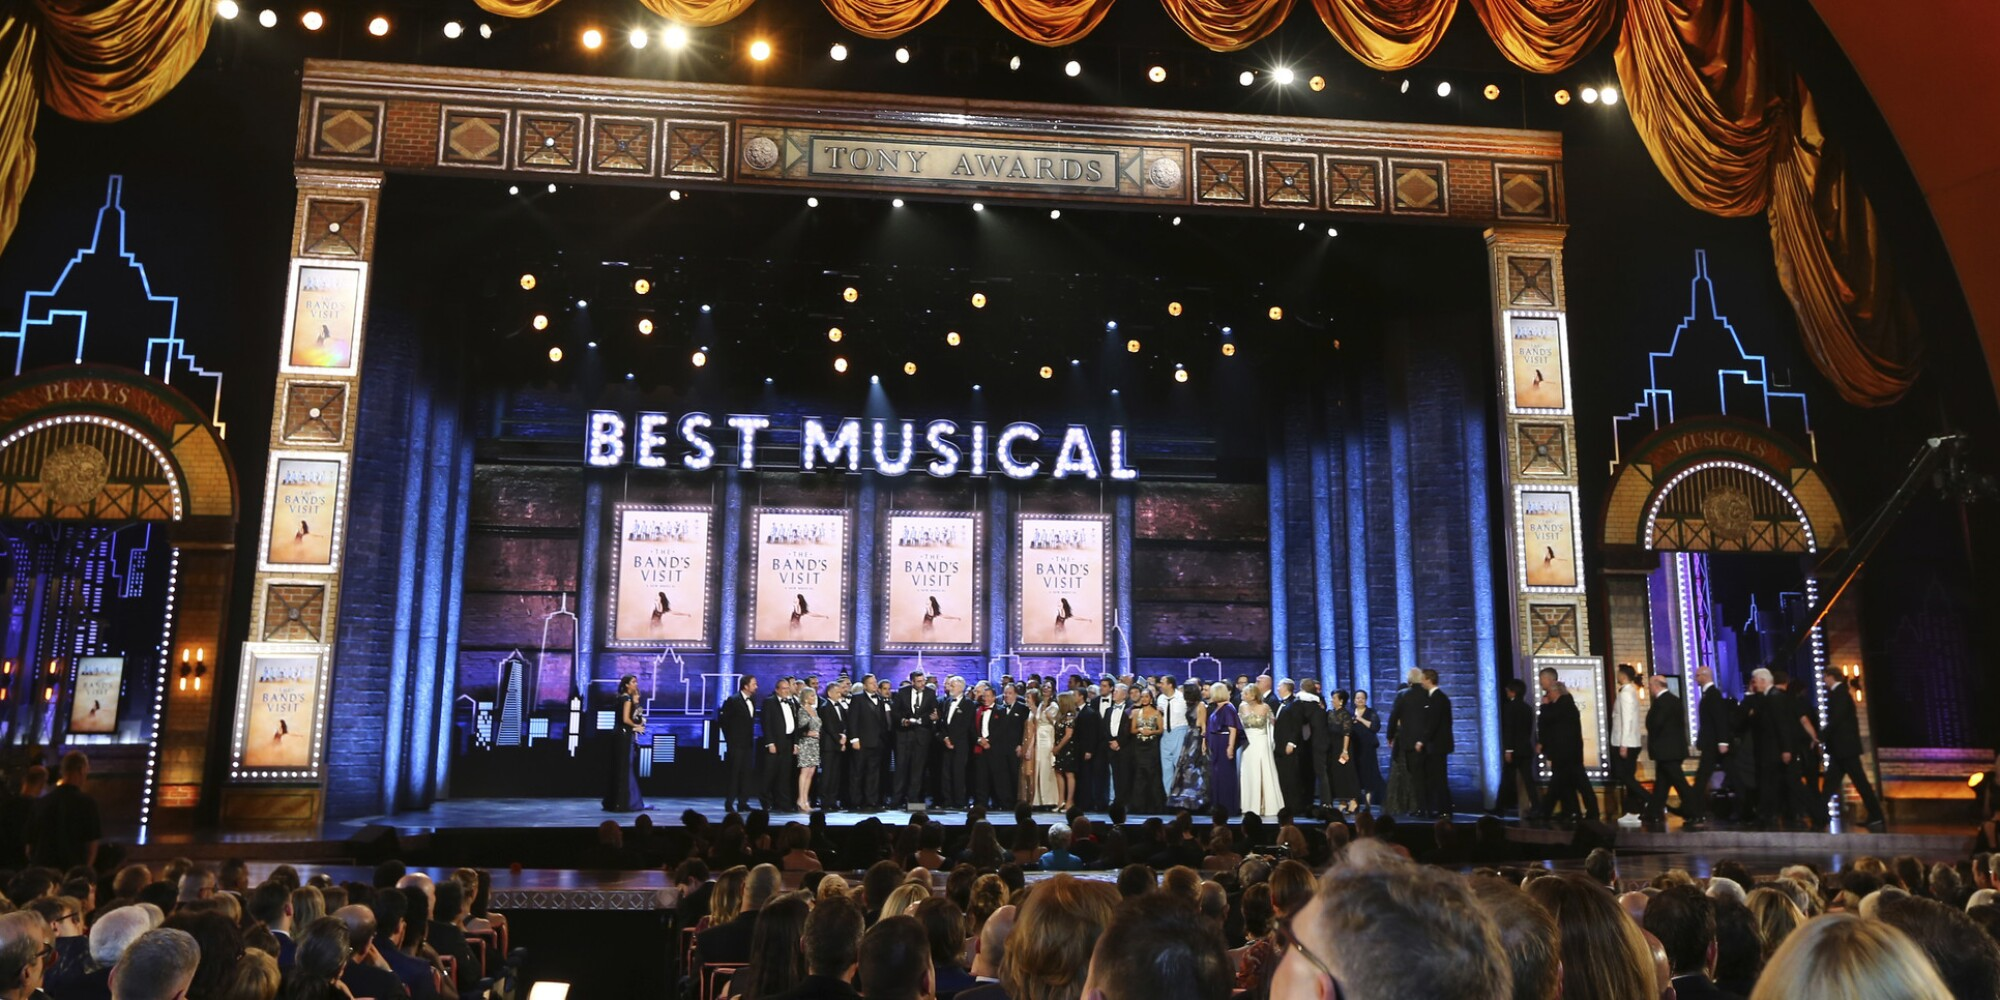 Tony Awards 2018: 'The Band's Visit' leads near-sweep with 10 wins; 'Harry Potter' takes best play